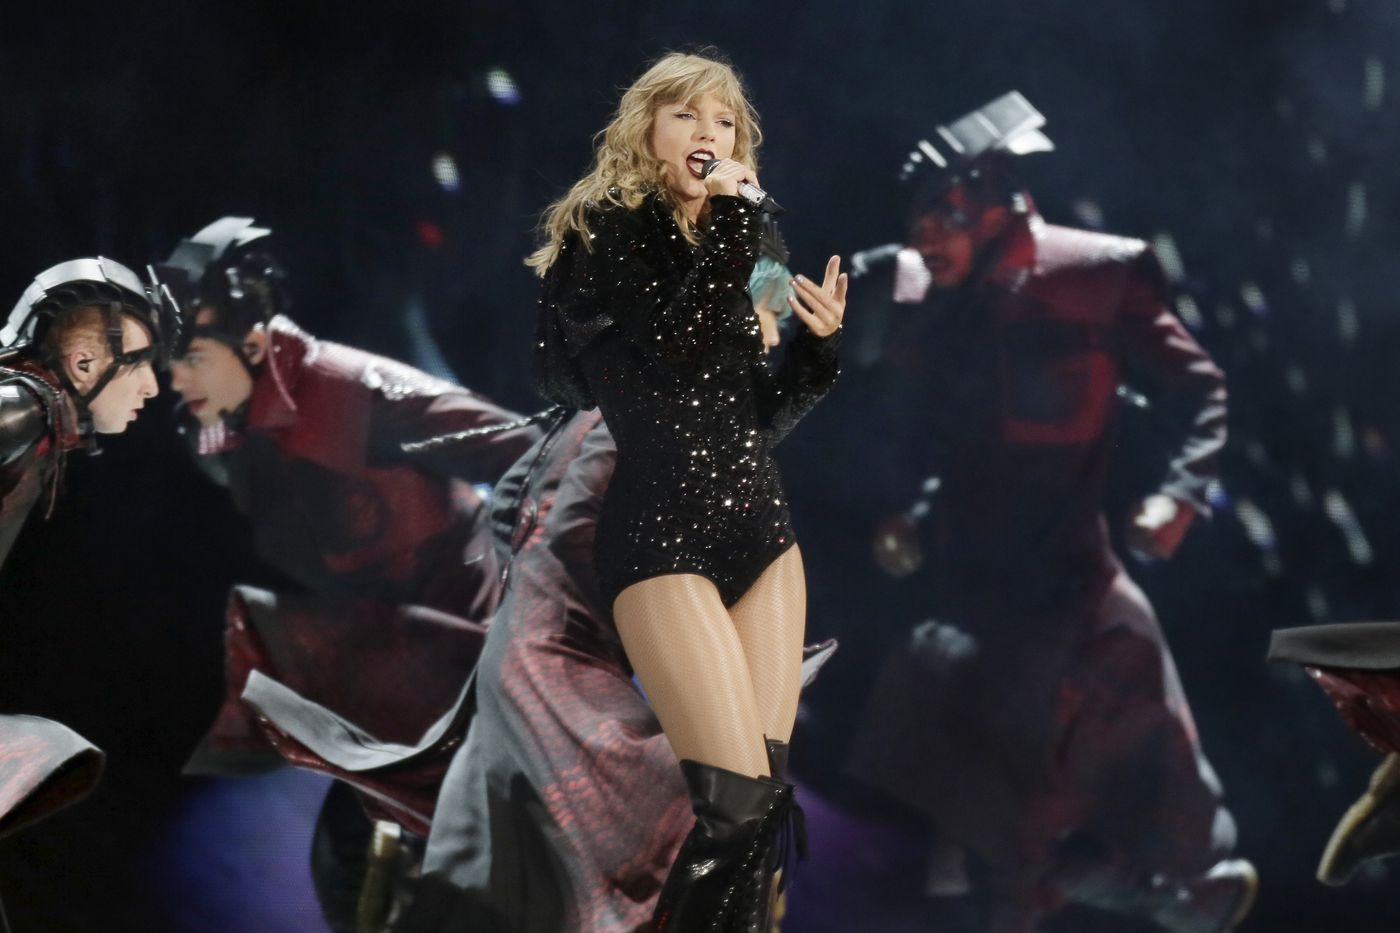 Taylor Swift stunned by fans' engagement backstage at Philadelphia concert